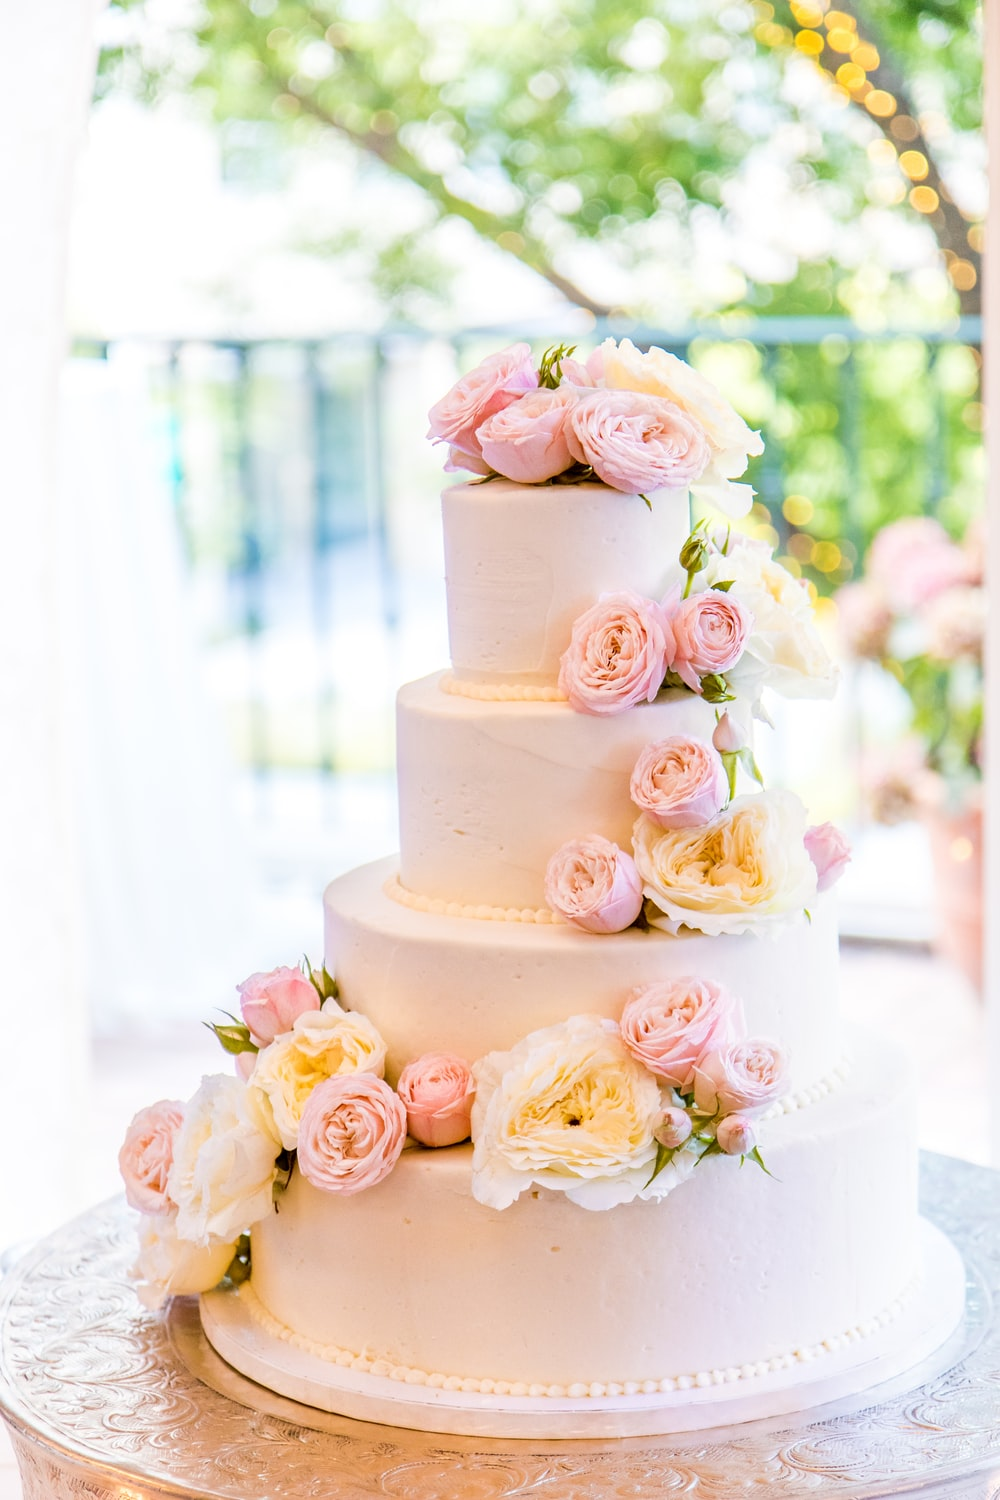 100 Wedding Cake Pictures Download Free Images On Unsplash